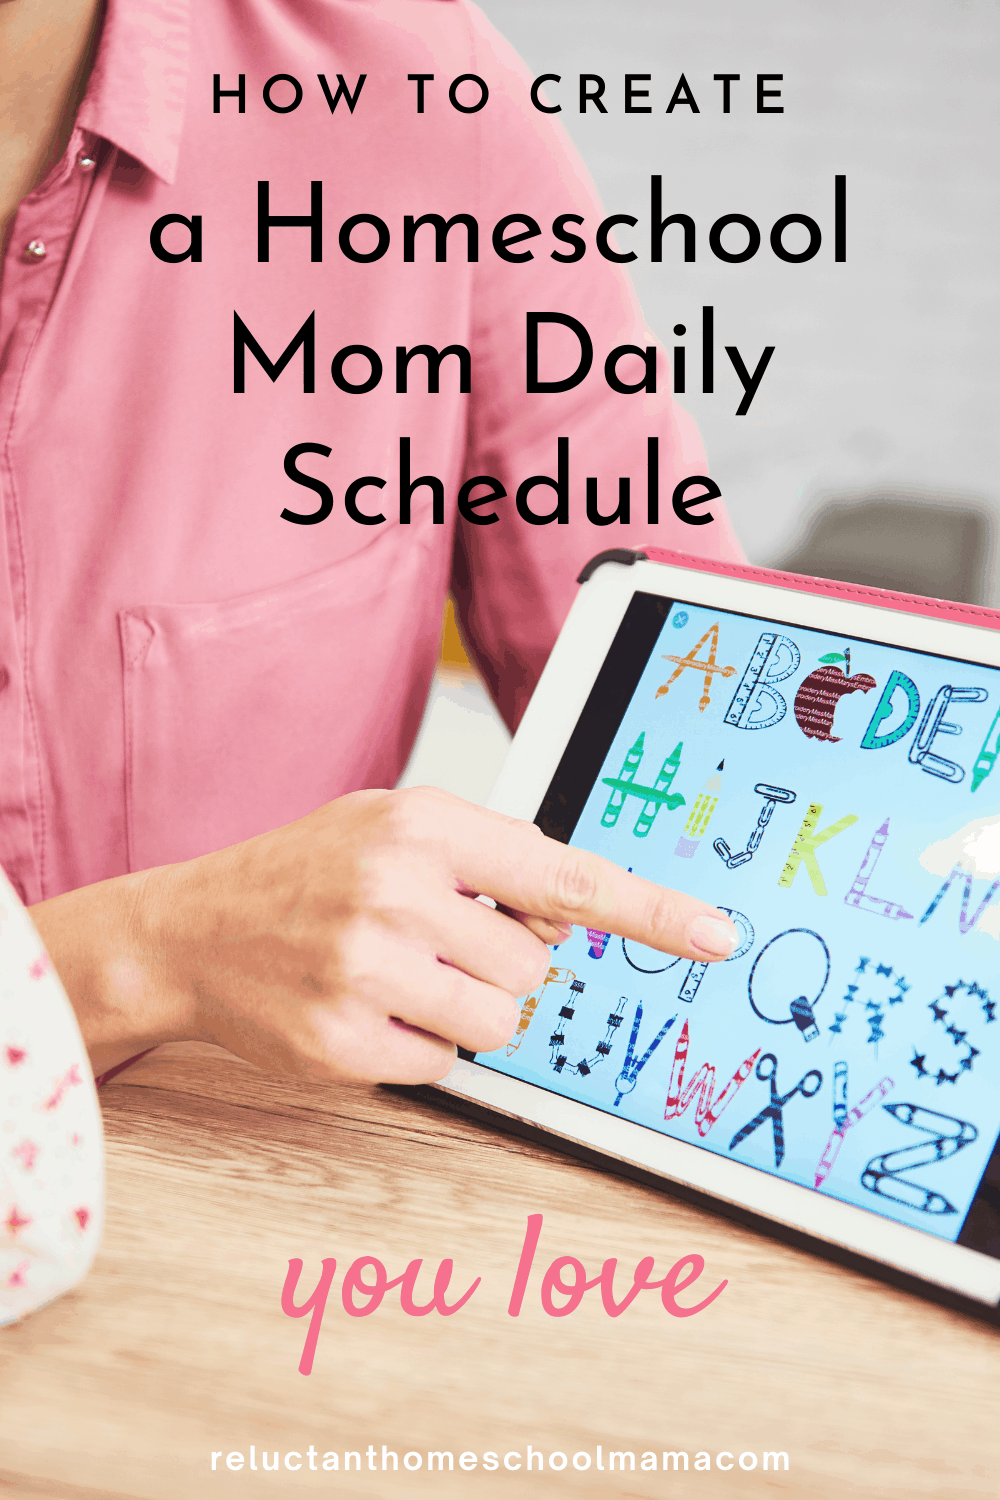 How to Create an Amazing Personalized Homeschool Mom Daily Schedule